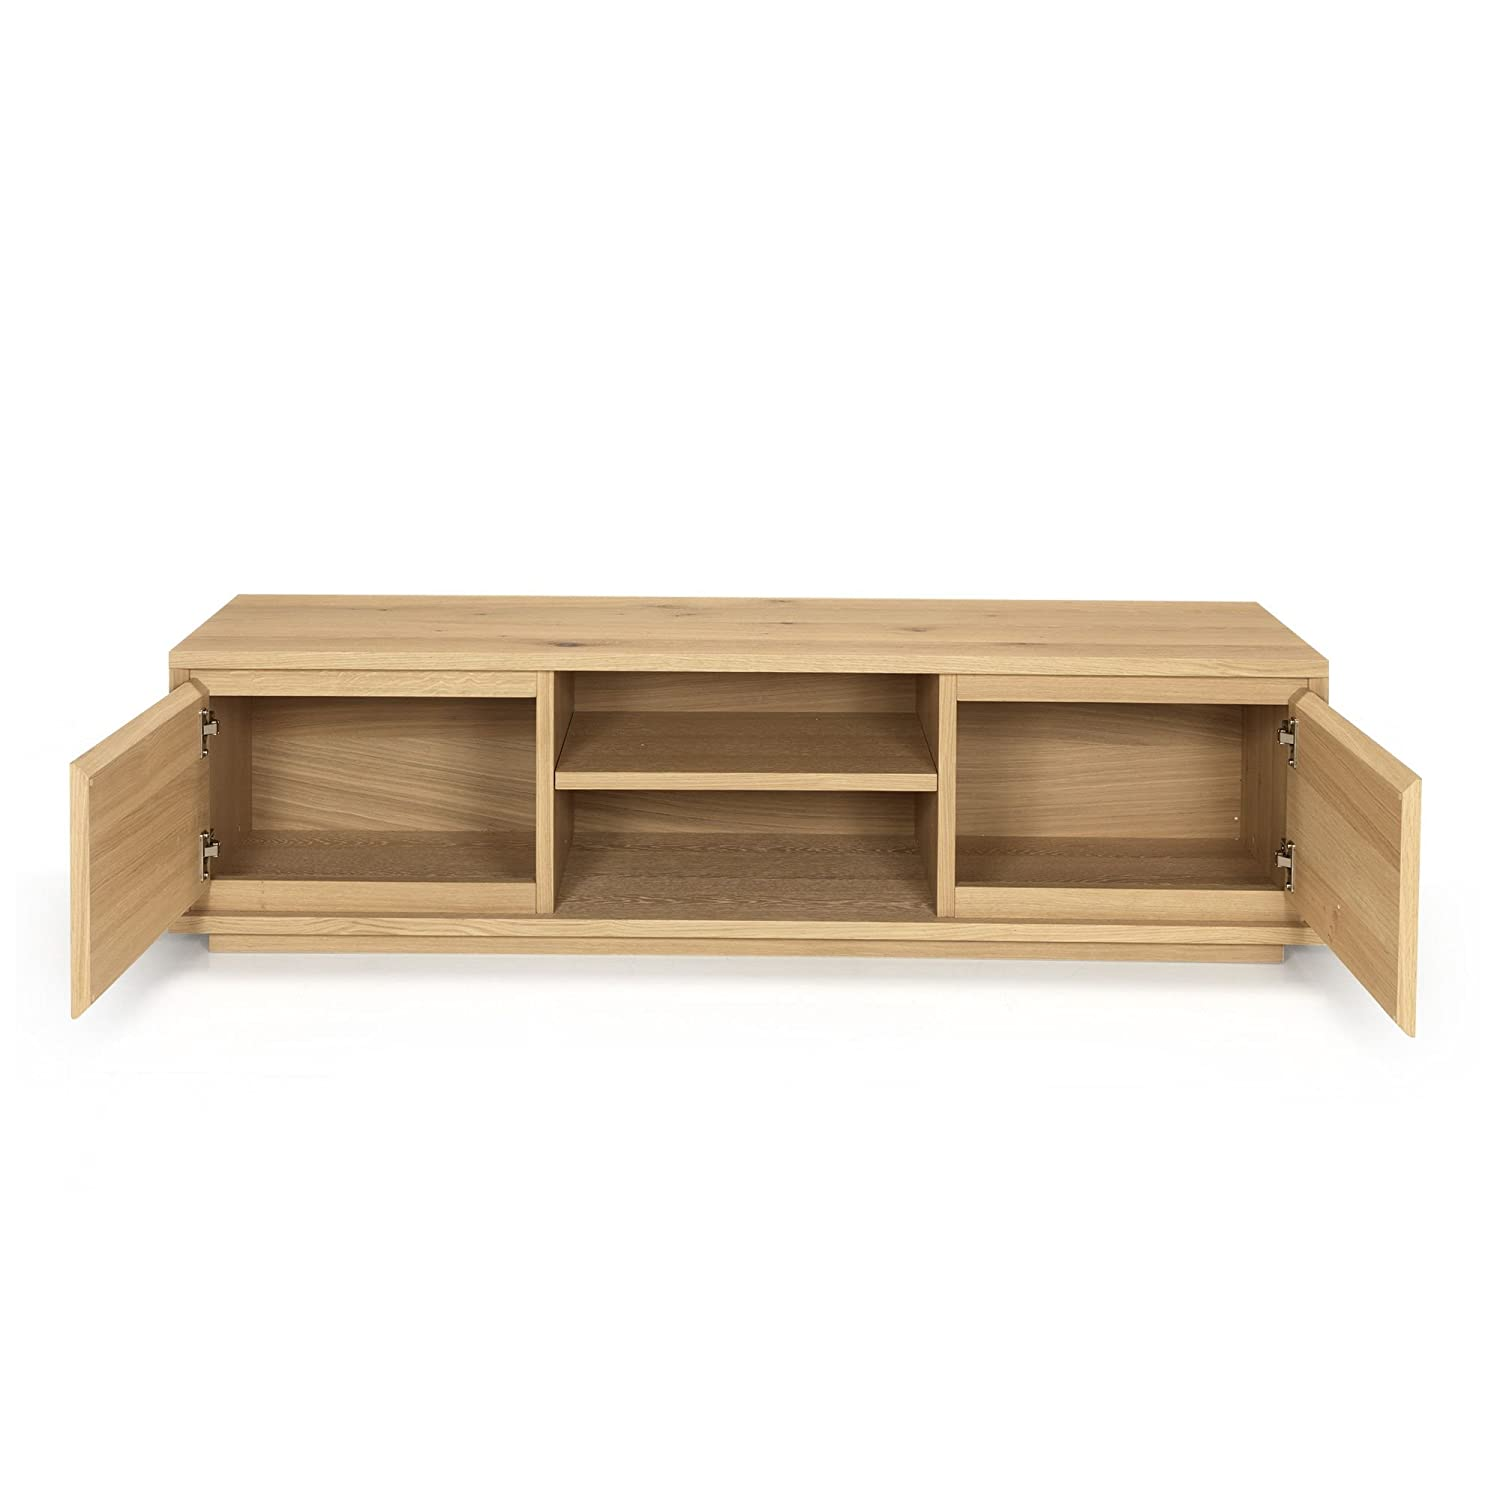 Stockholm Meuble Tv Design Scandinave Naturel Alinea 150 0x40  # Meuble Tv Stockholm